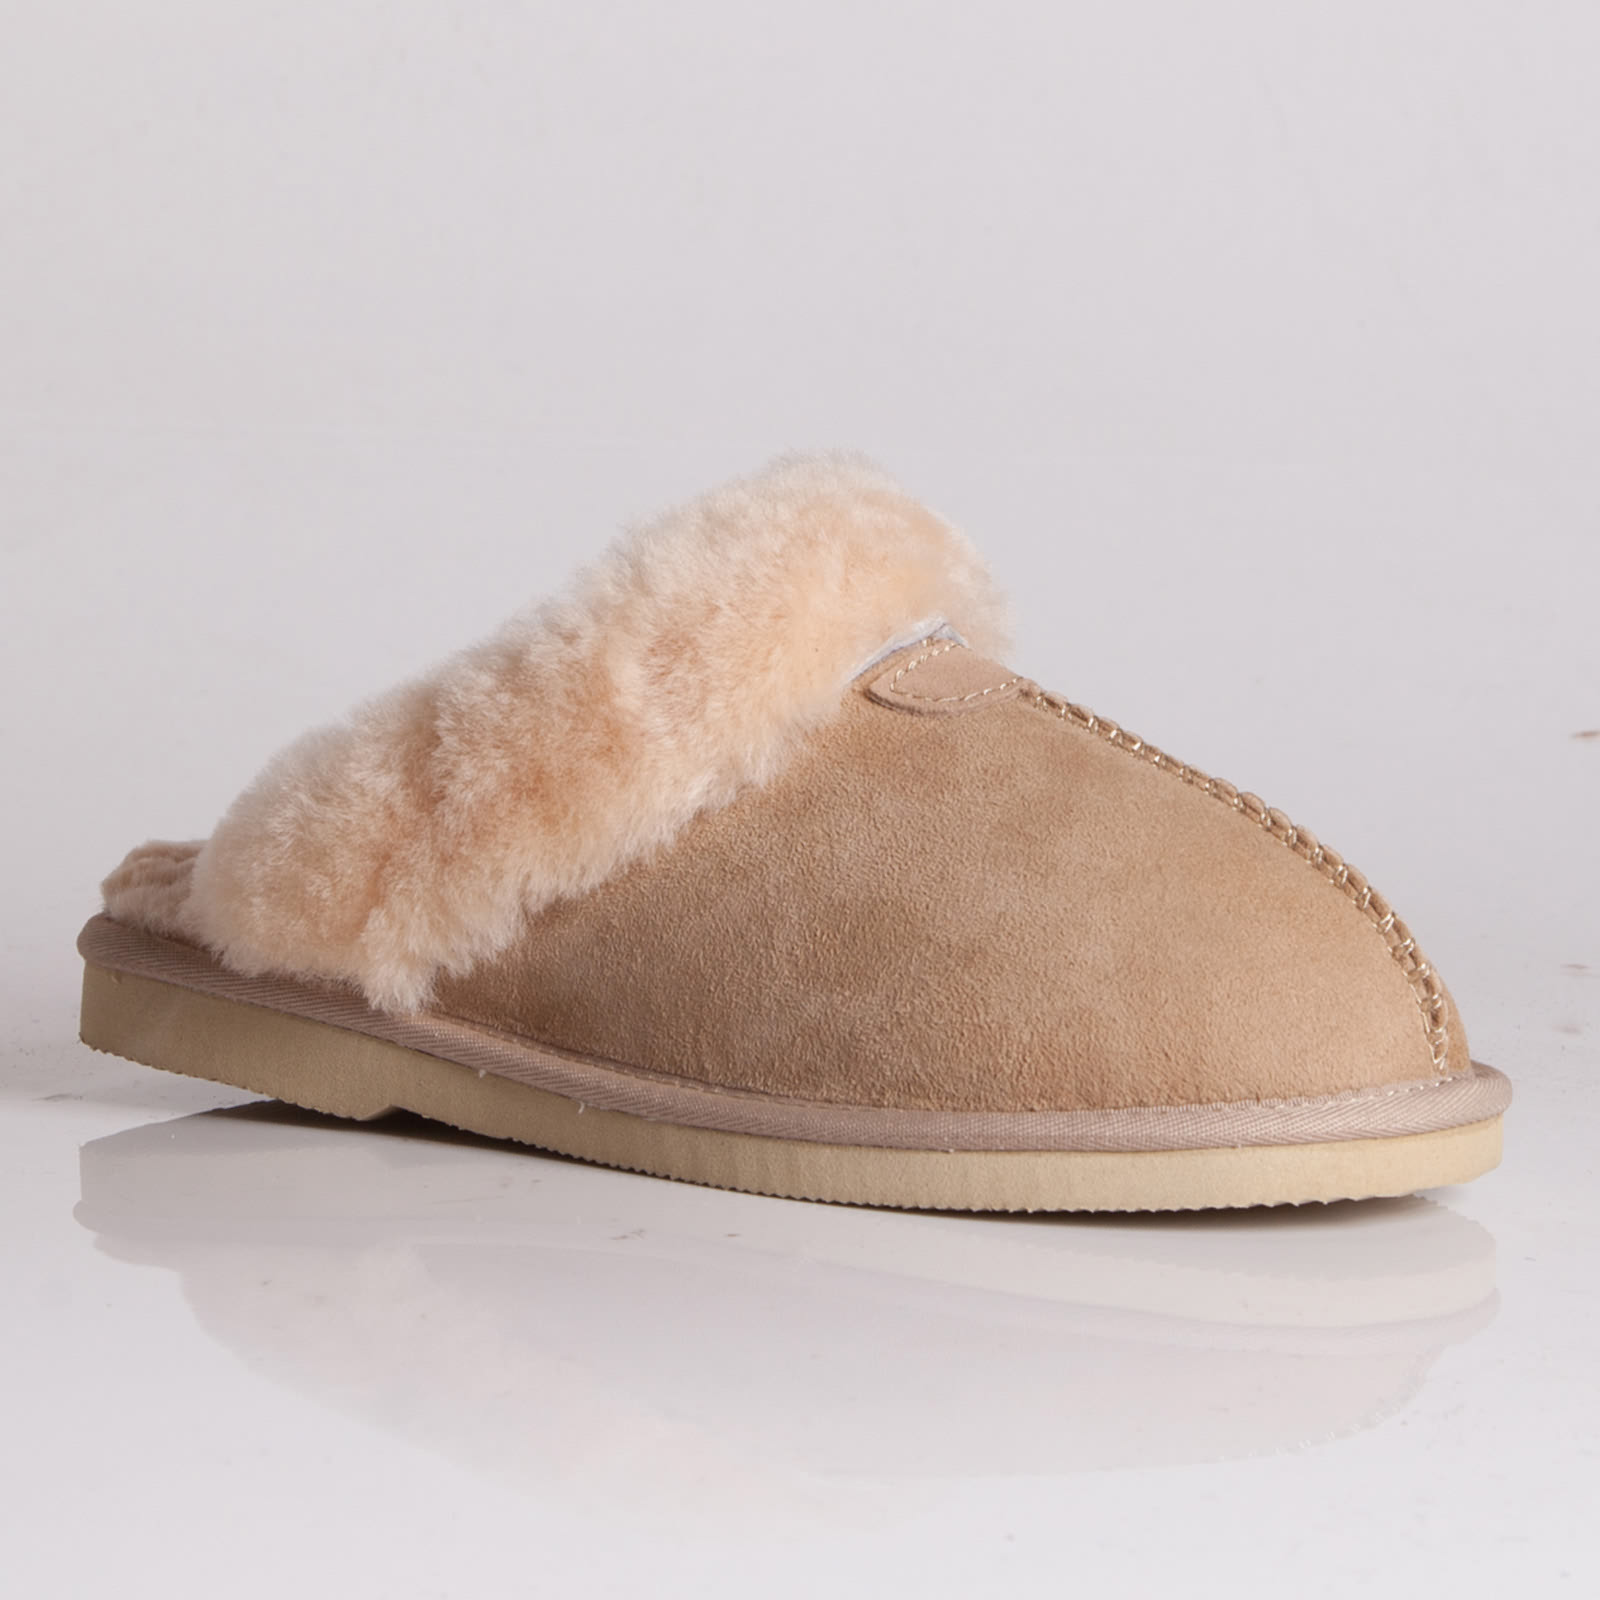 053328934 Ugg Womens Cozy Knit Scuff Slippers - cheap watches mgc-gas.com